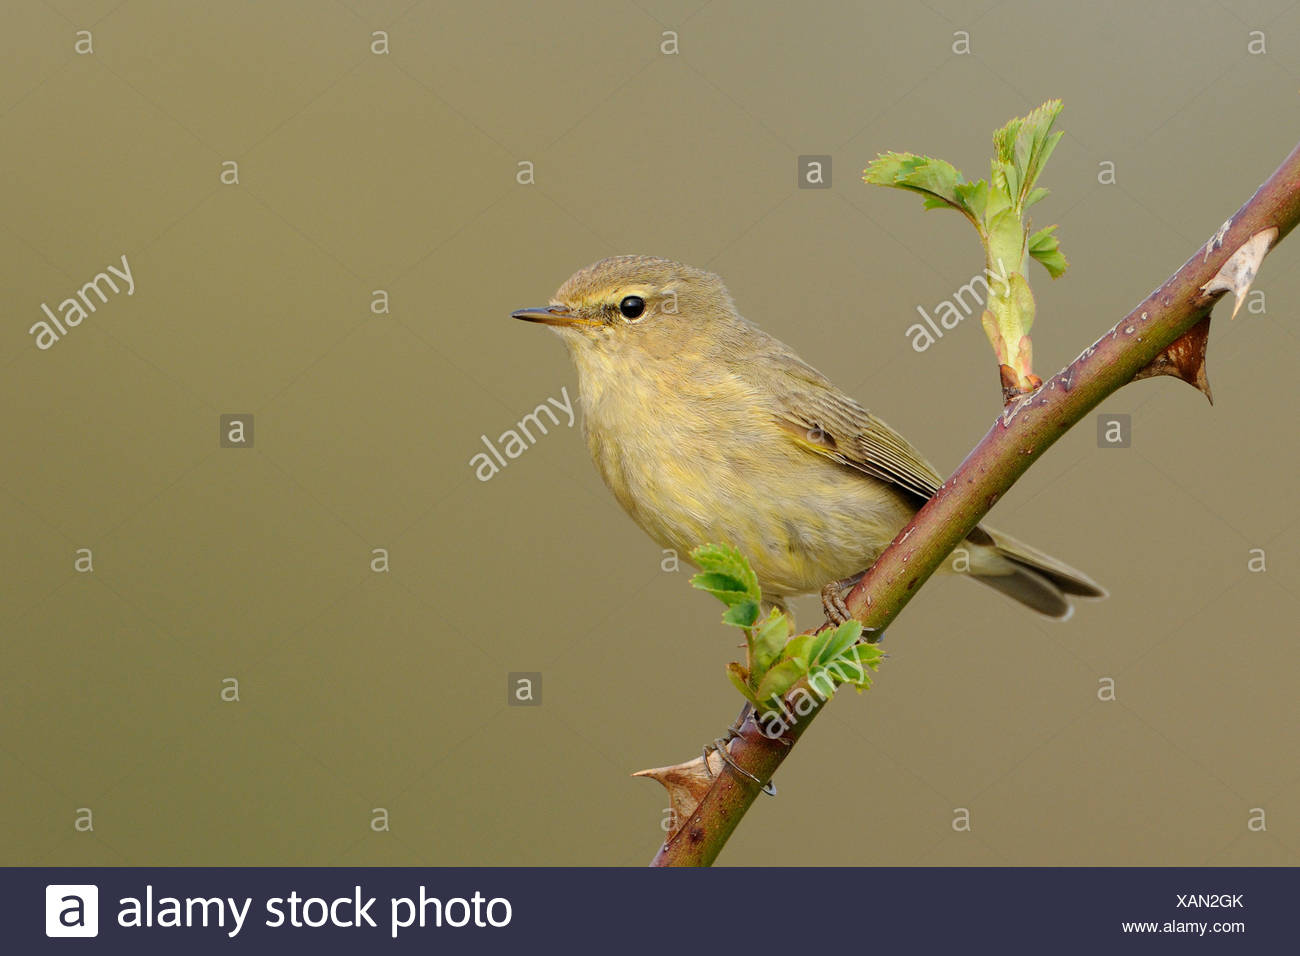 Tjiftjaf op uitlopende tak van een wilde roos; Chiffchaff perched on a branch of a wild rose Stock Photo